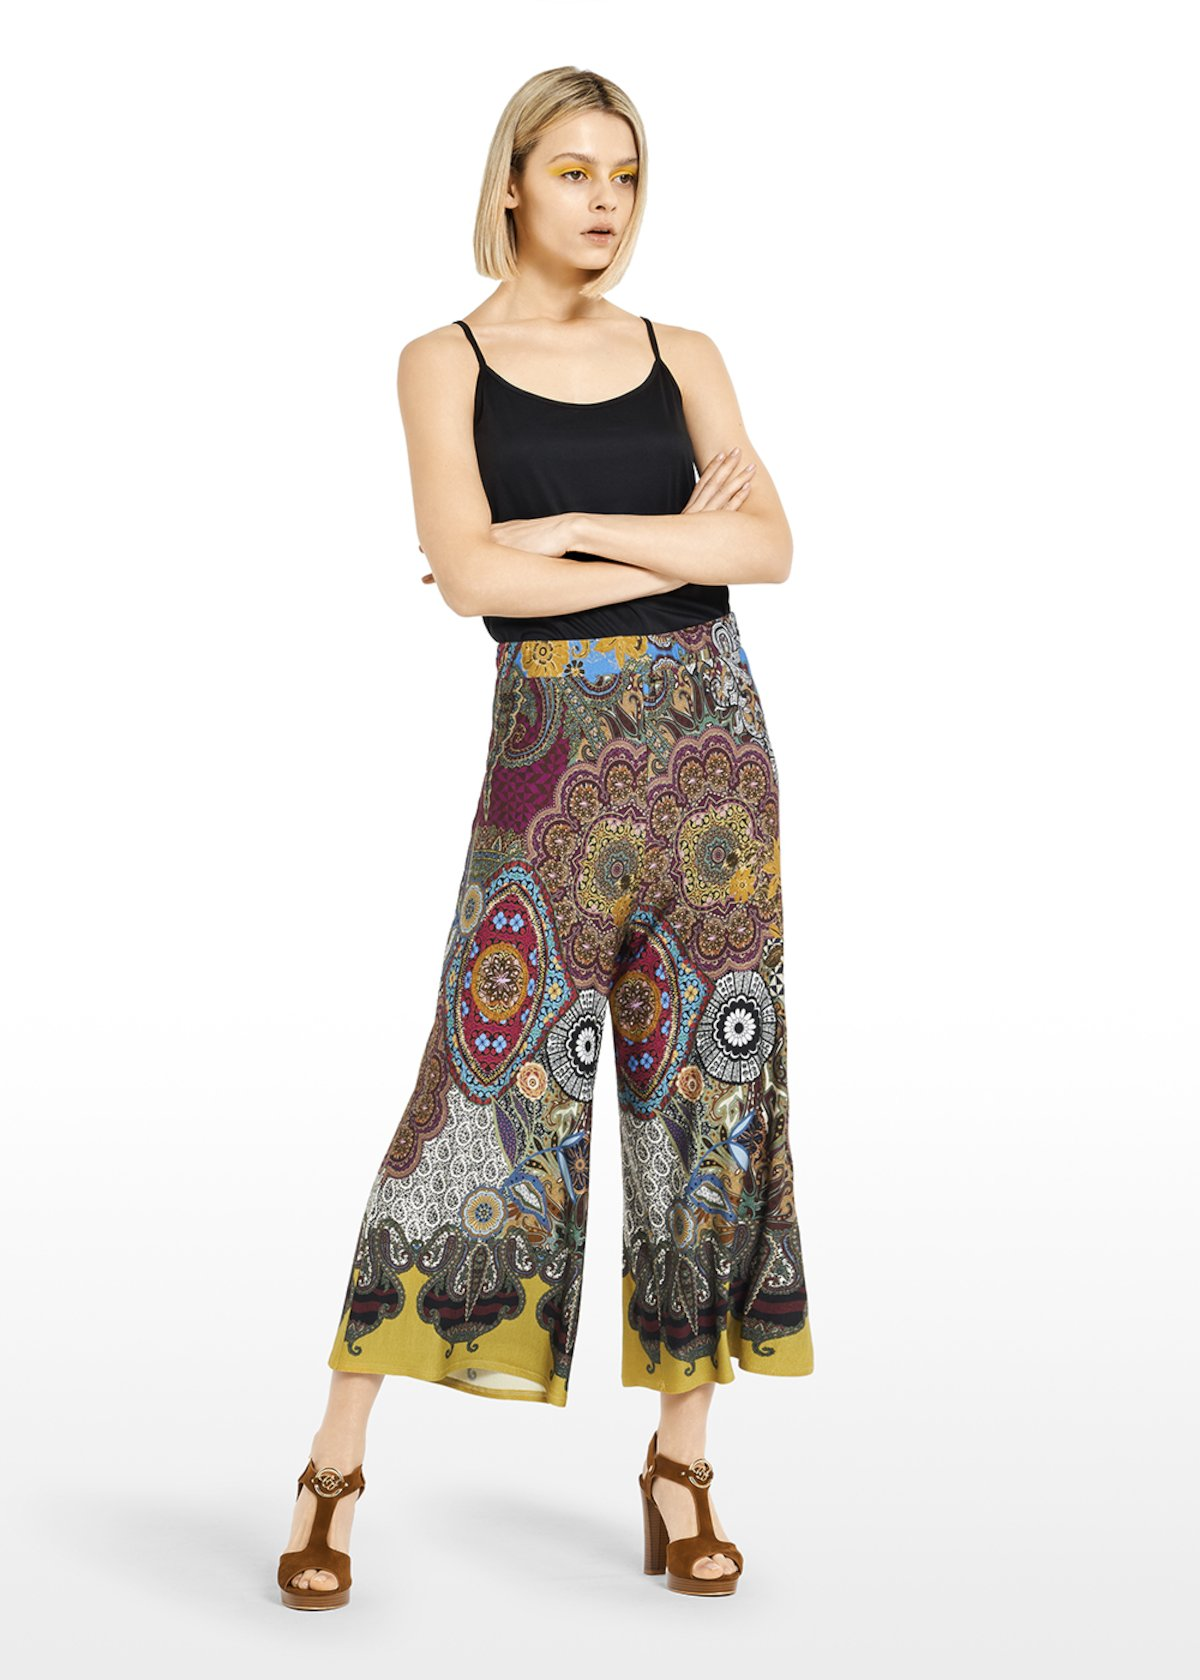 Cropped pants 'Peggy' Megan design with ethno fantasy - Miele / Black Fantasia - Woman - Category image